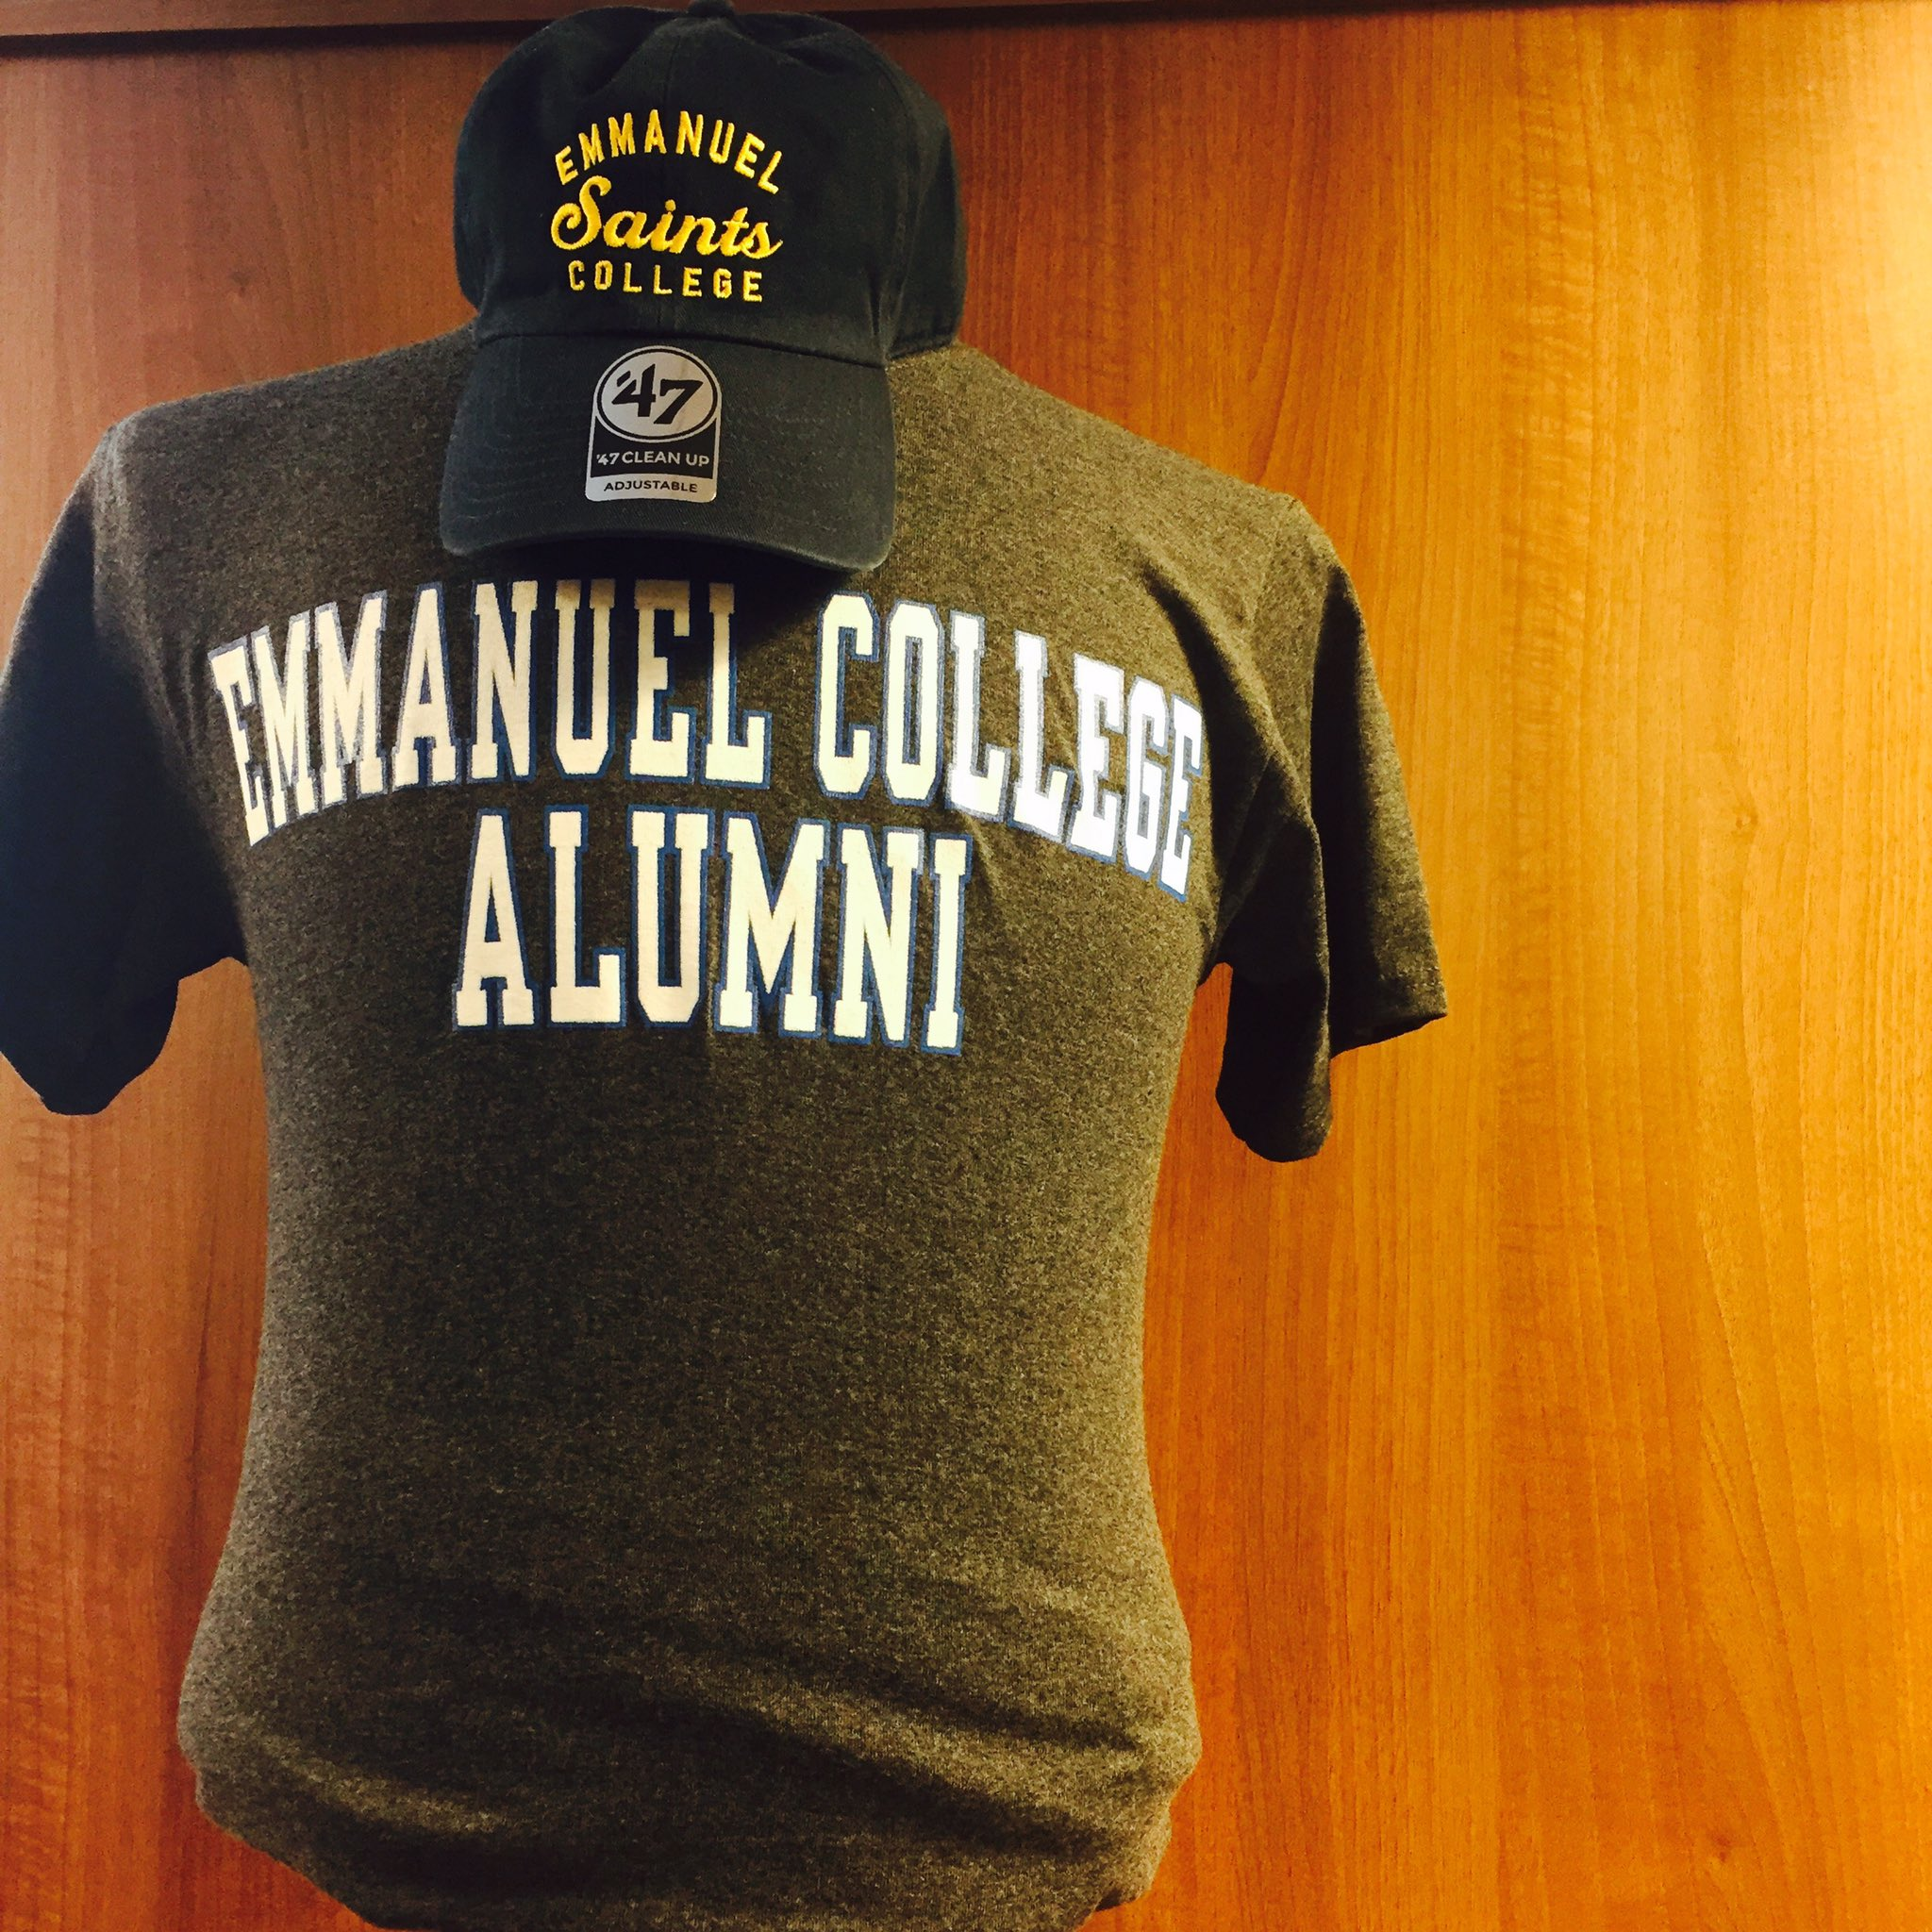 The bookstore is open until 6 today and 10-2 tomorrow with EC gear aplenty! #ECReunion #AlwaysASaint #EmmasForever https://t.co/YAdlYQ8bgP